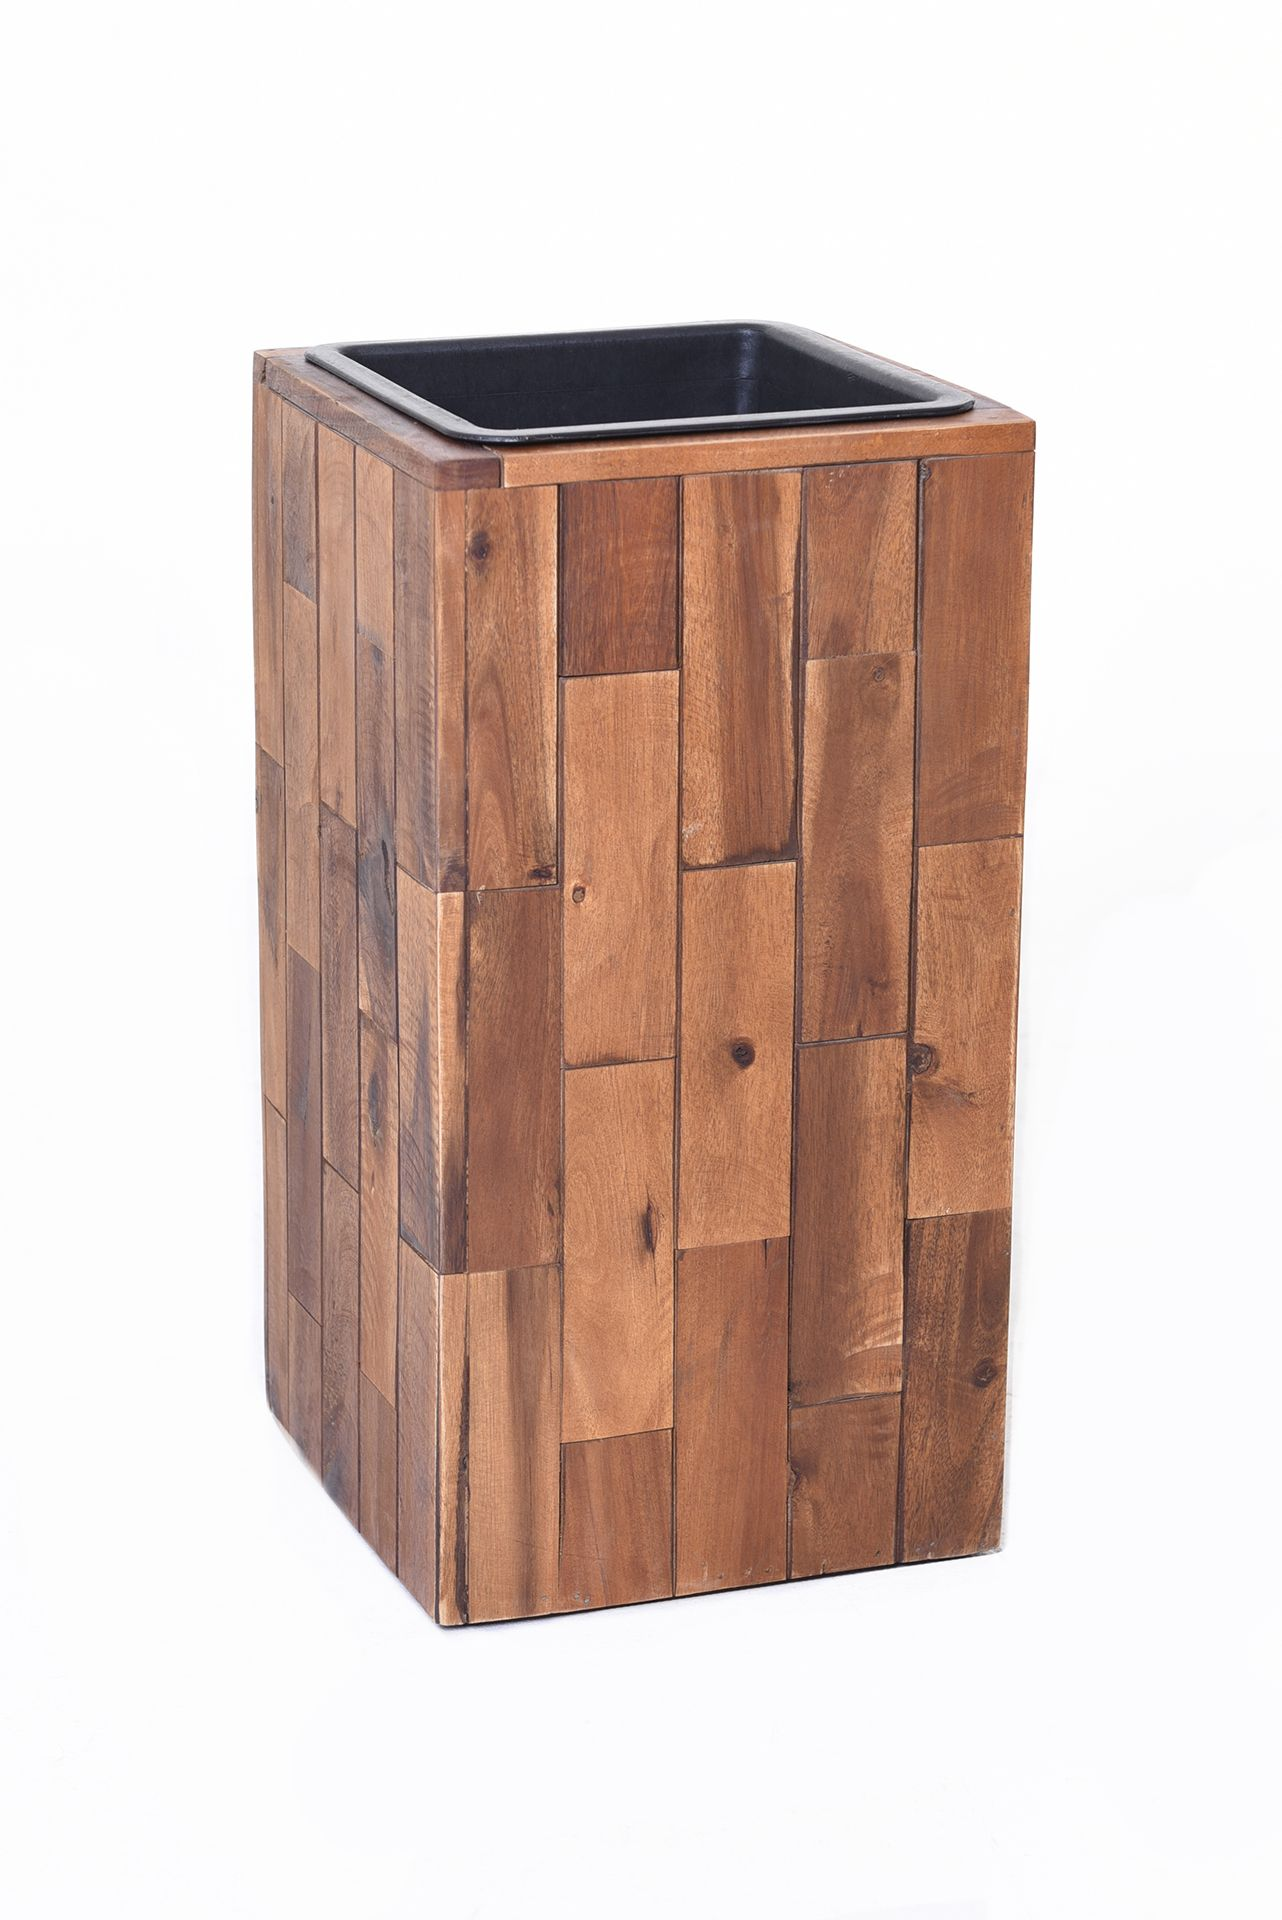 pflanzk bel blumenk bel block s ule aus holz akazie 45 cm hoch braun ebay. Black Bedroom Furniture Sets. Home Design Ideas